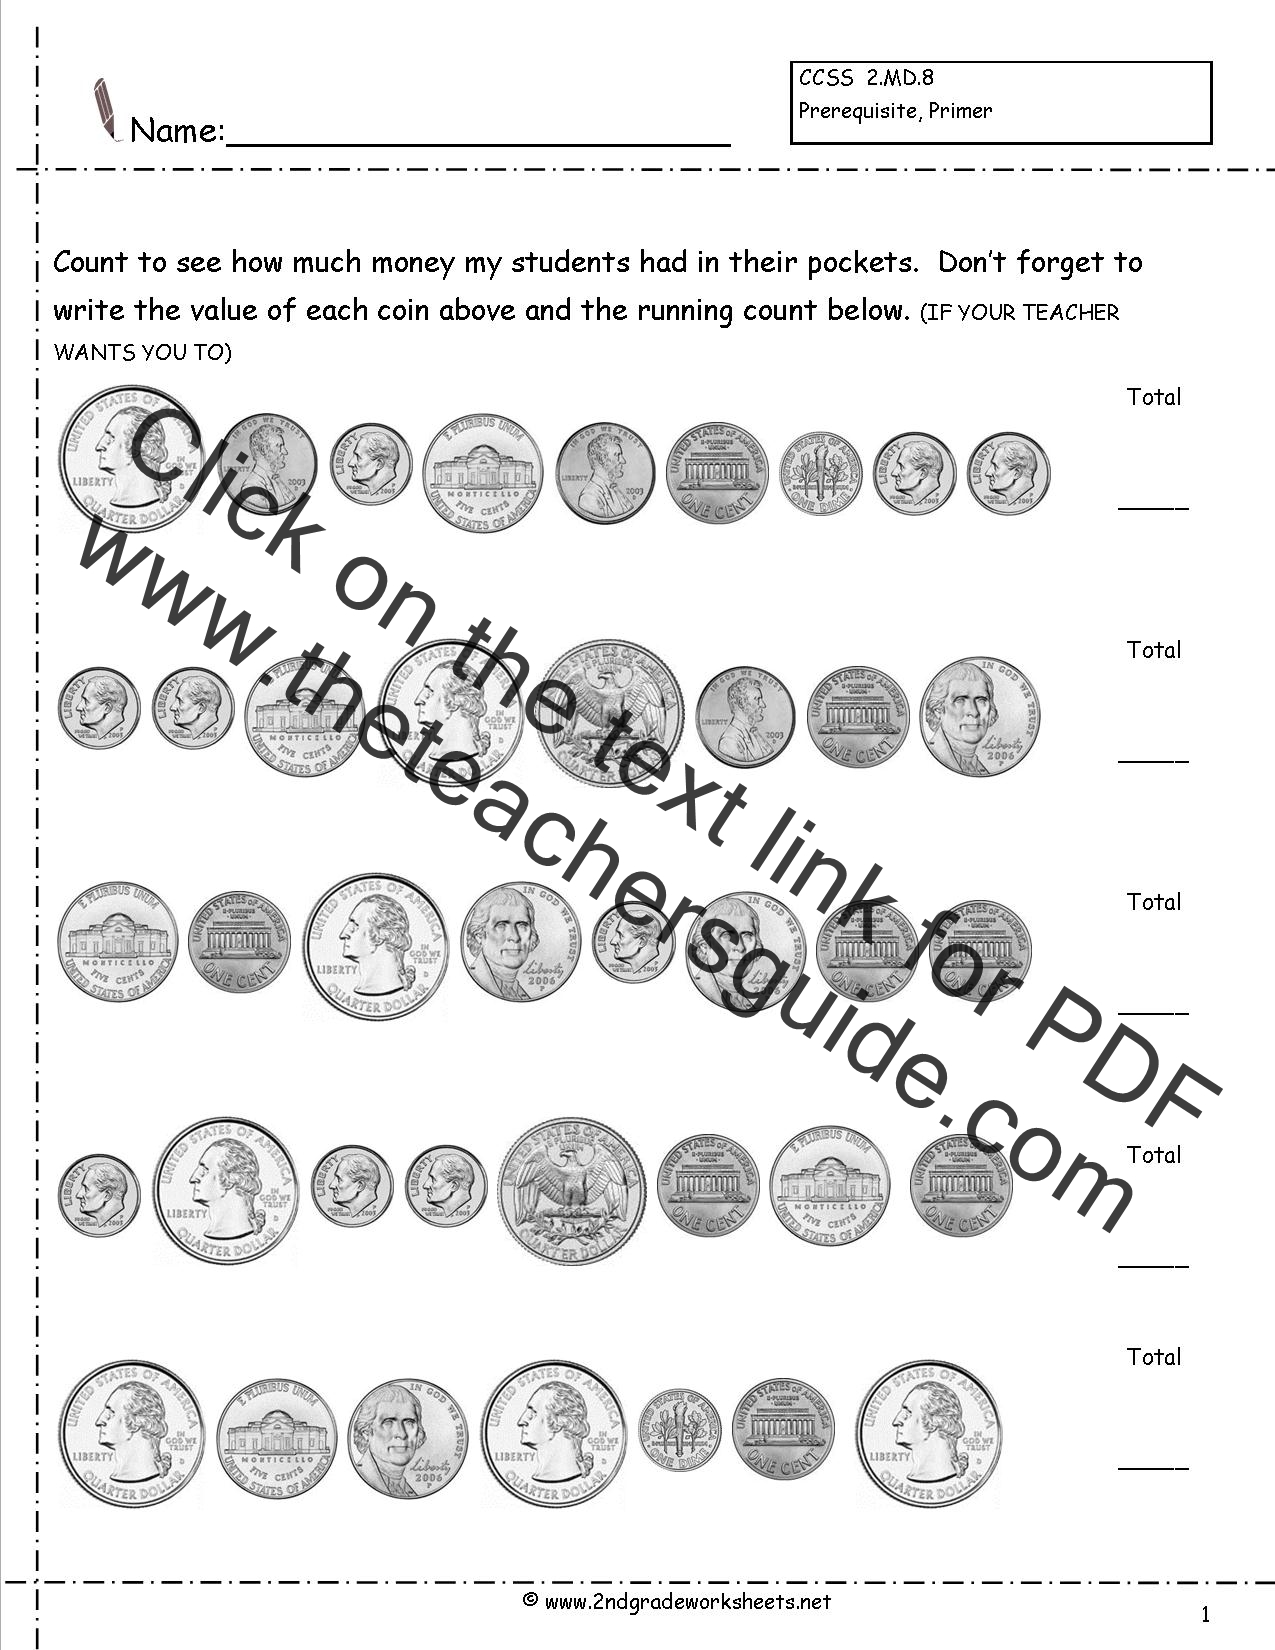 Worksheets Counting Pennies Worksheet ccss 2 md 8 worksheets counting coins money worksheets